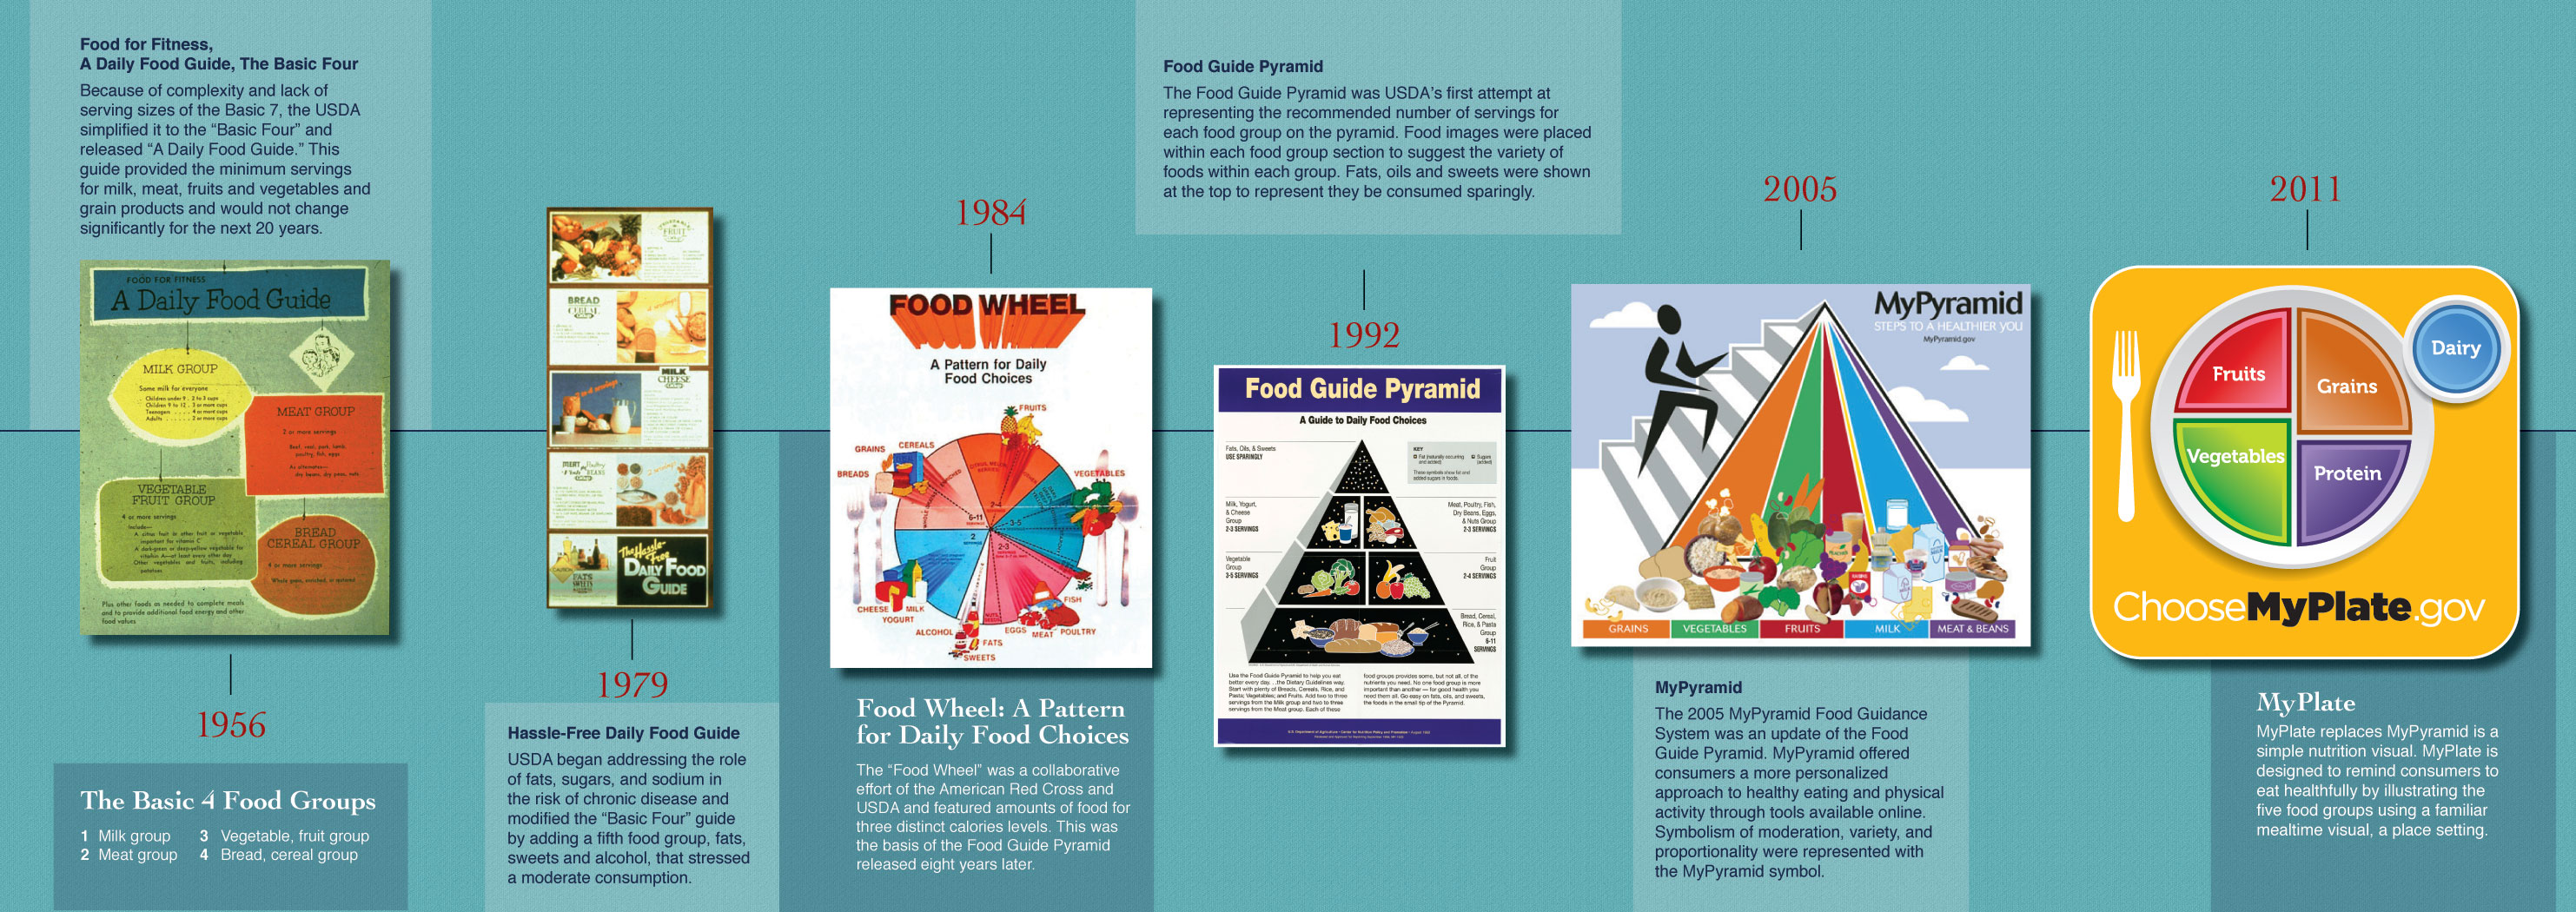 118 years of usda food and nutrition guides explained in